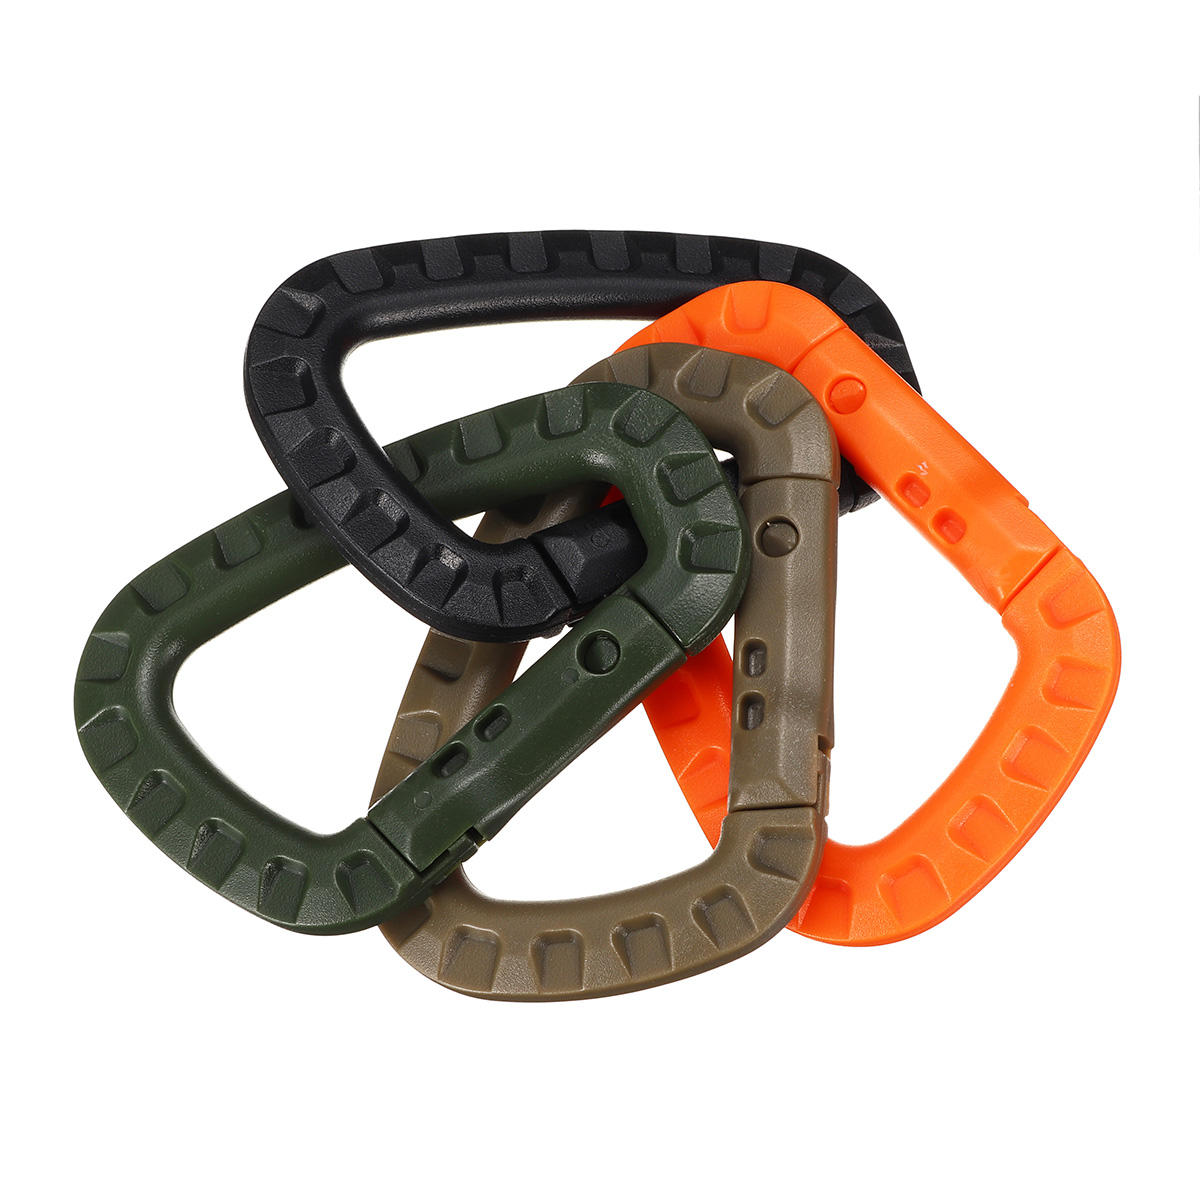 Carabiner Small Cari Keychain Clip Spring Link D Shape Fast Hang Buckle Climbing Hook Key Chain